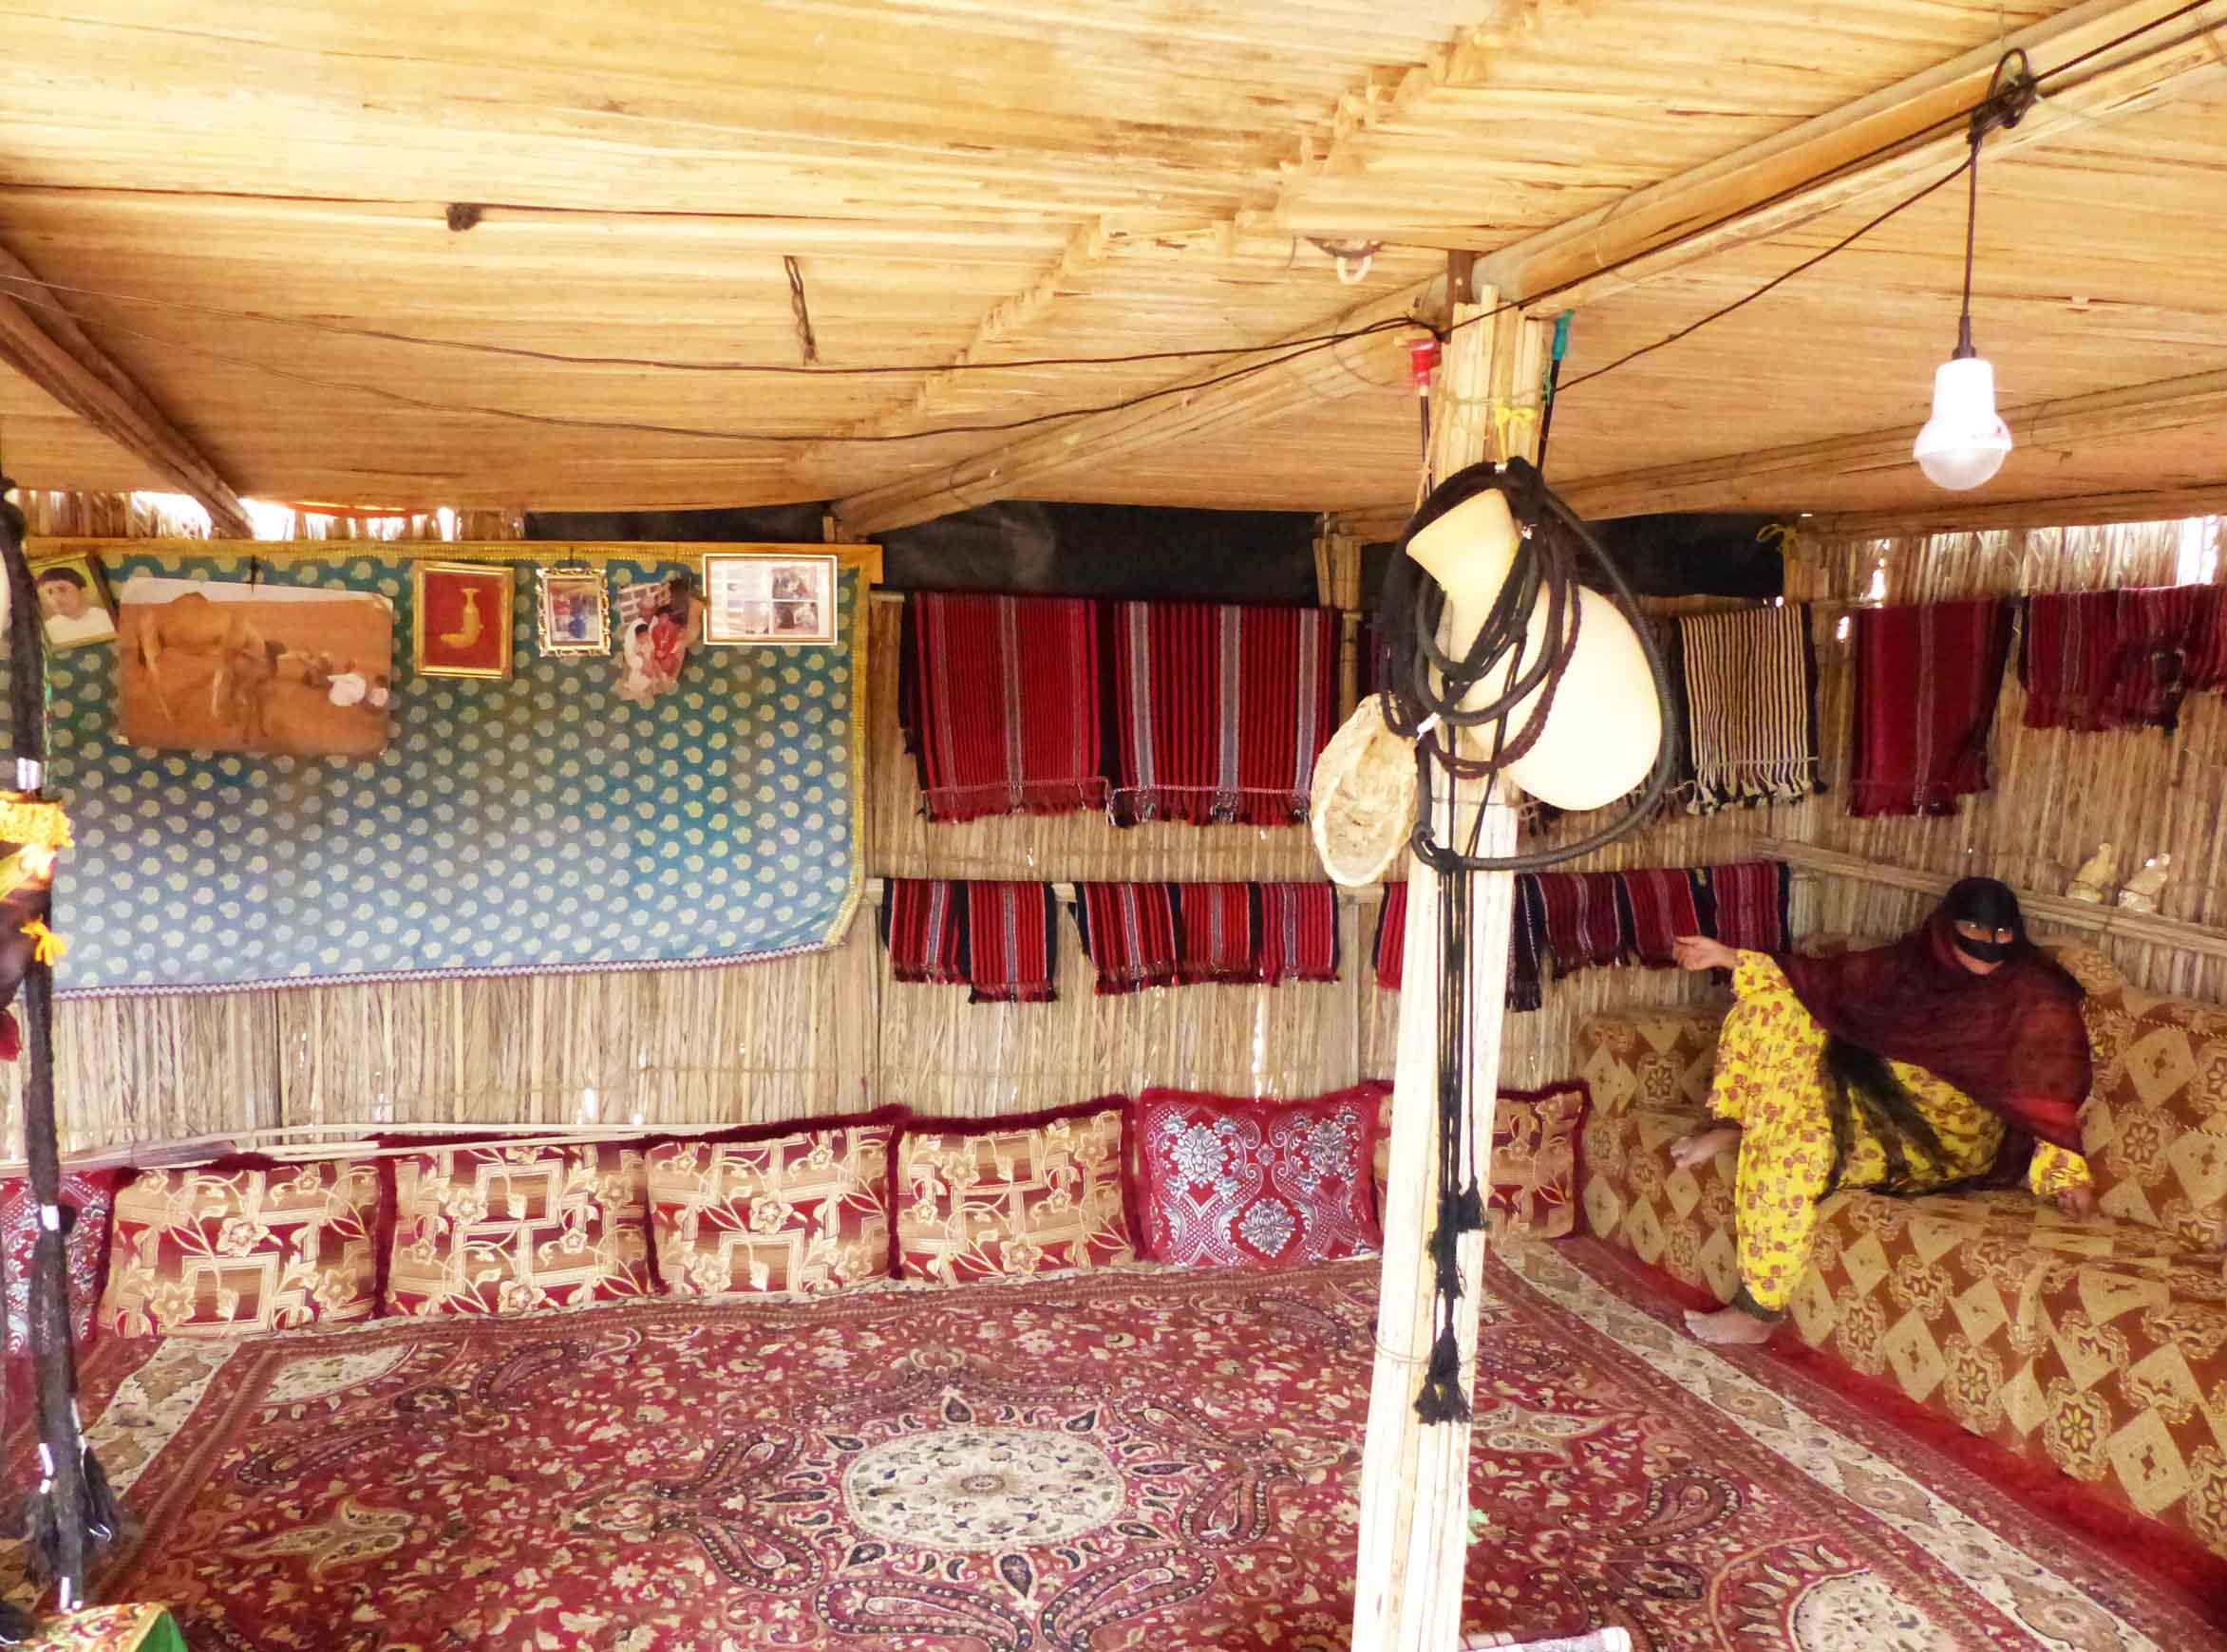 Inside a home of sticks, with red carpet and lady sitting